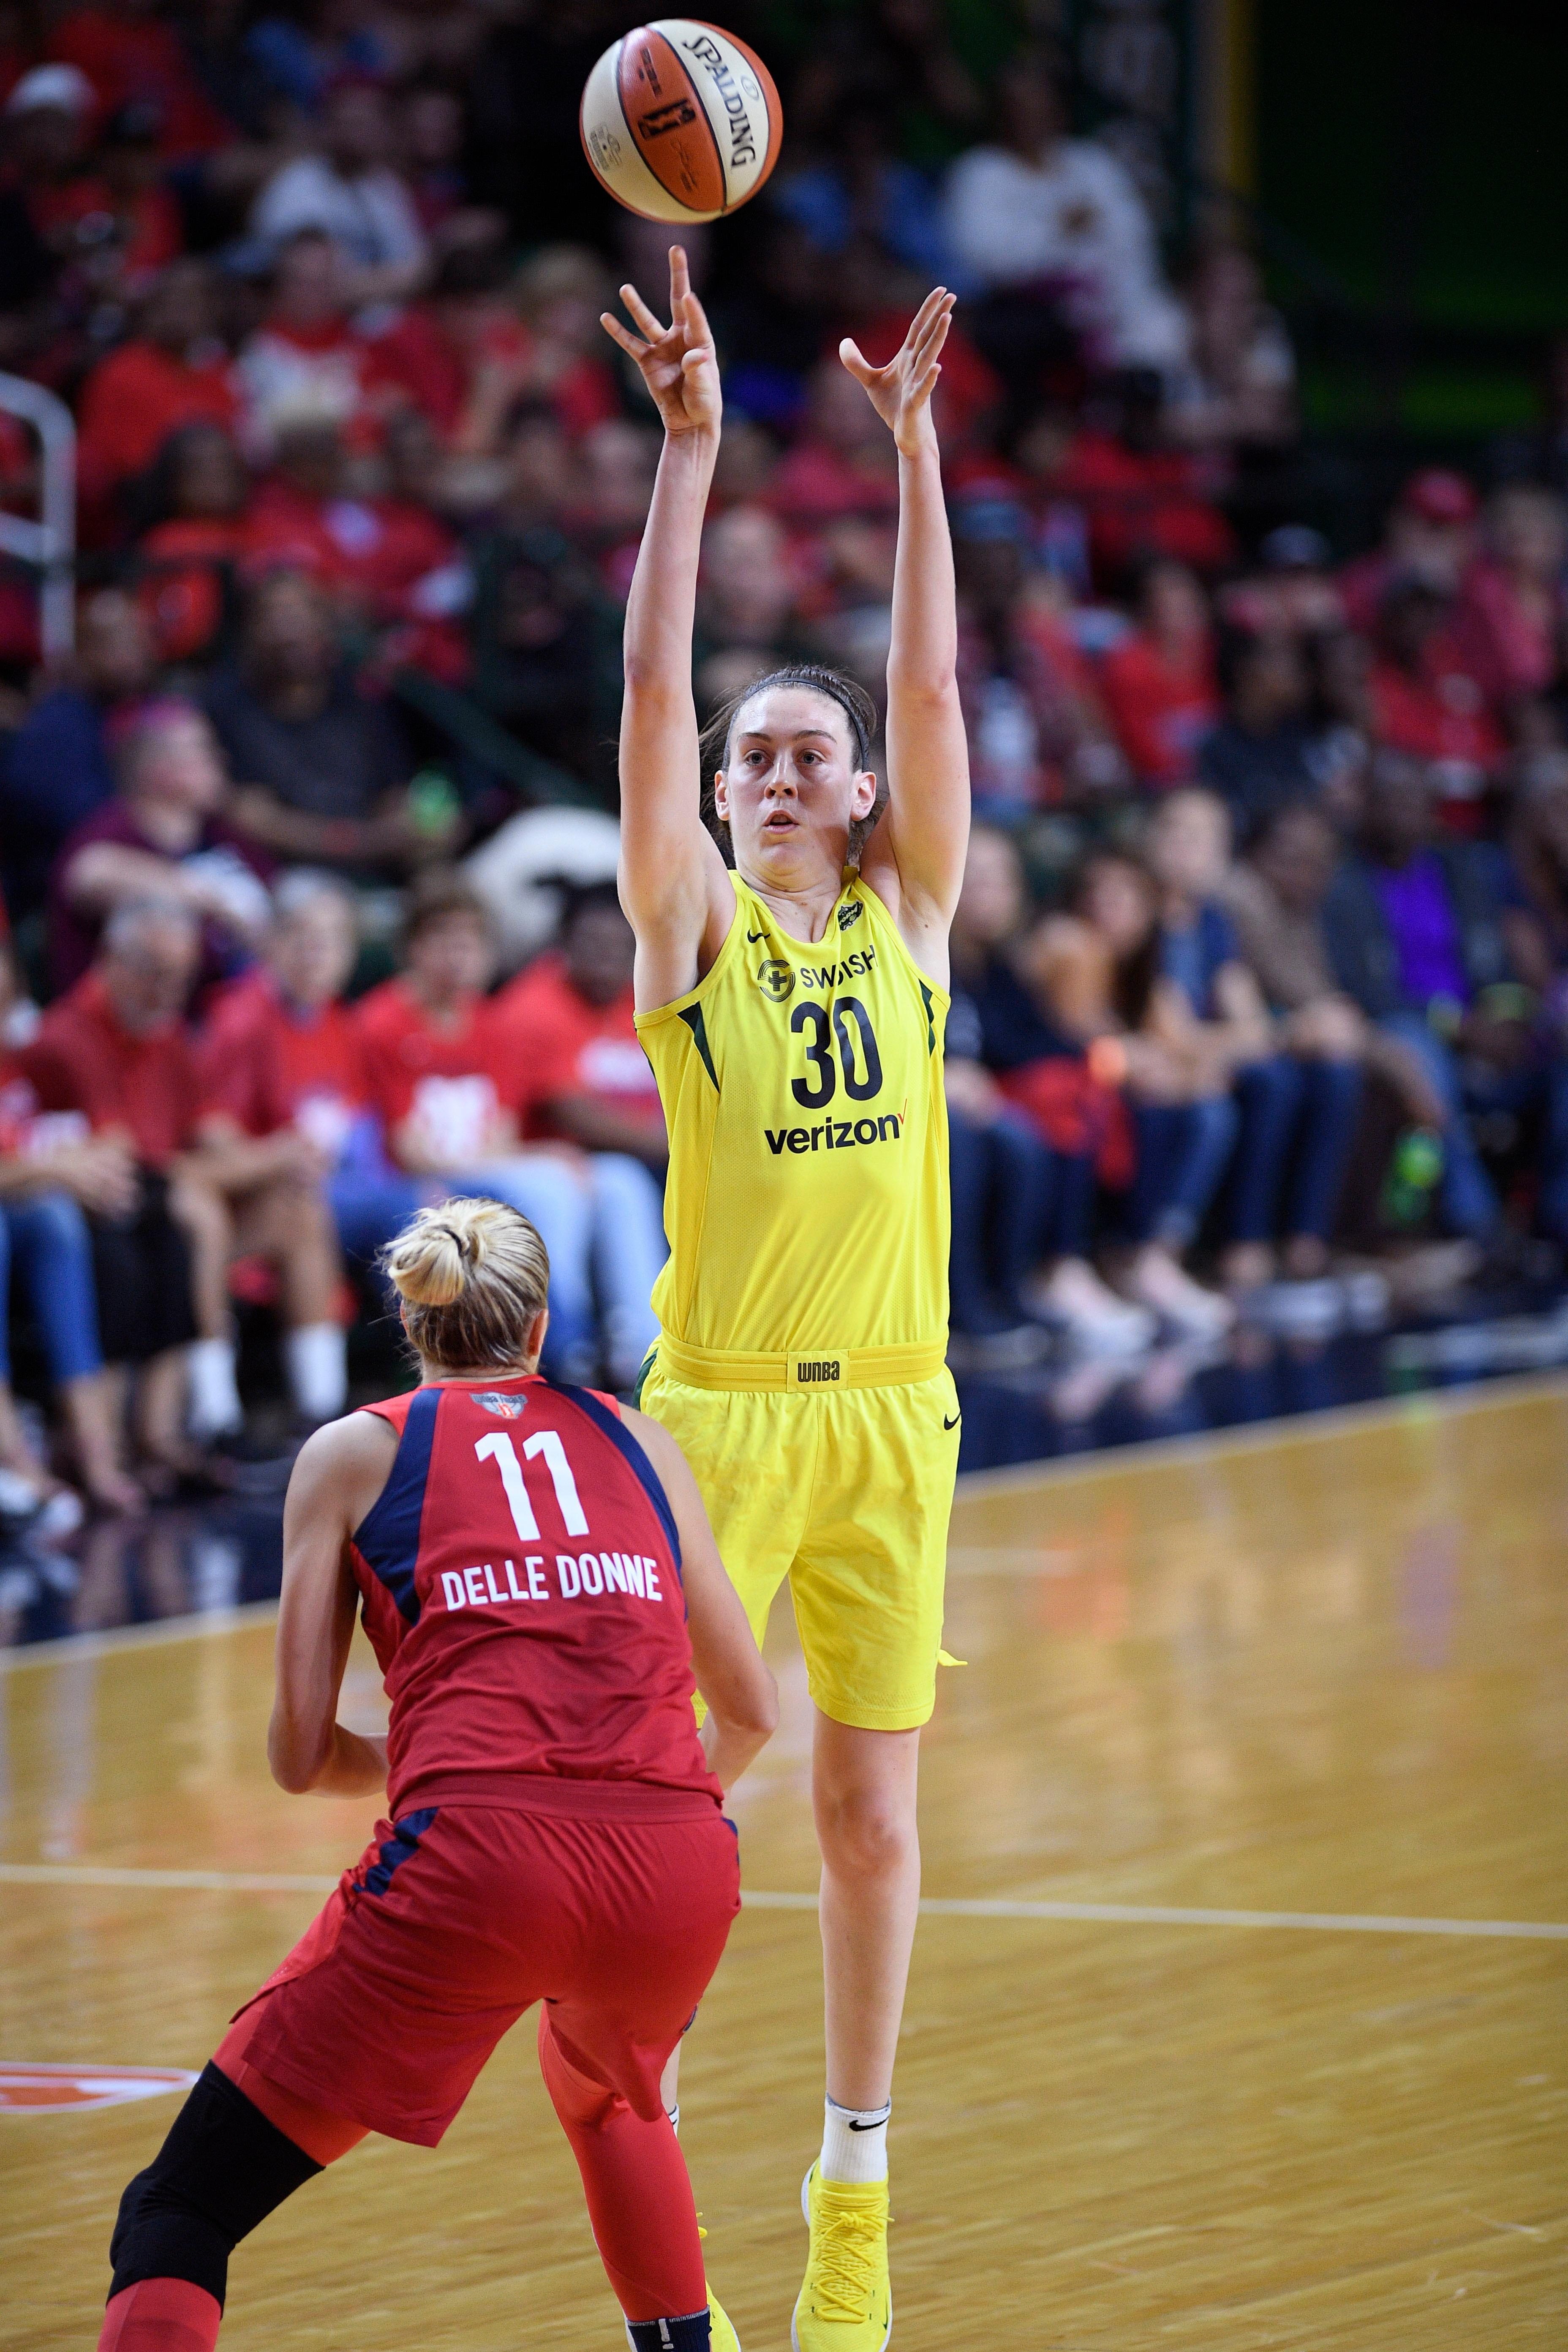 Seattle Storm forward Breanna Stewart (30) shoots against Washington Mystics forward Elena Delle Donne (11) during the first half of Game 3 of the WNBA basketball finals, Wednesday, Sept. 12, 2018, in Fairfax, Va. (AP Photo/Nick Wass)